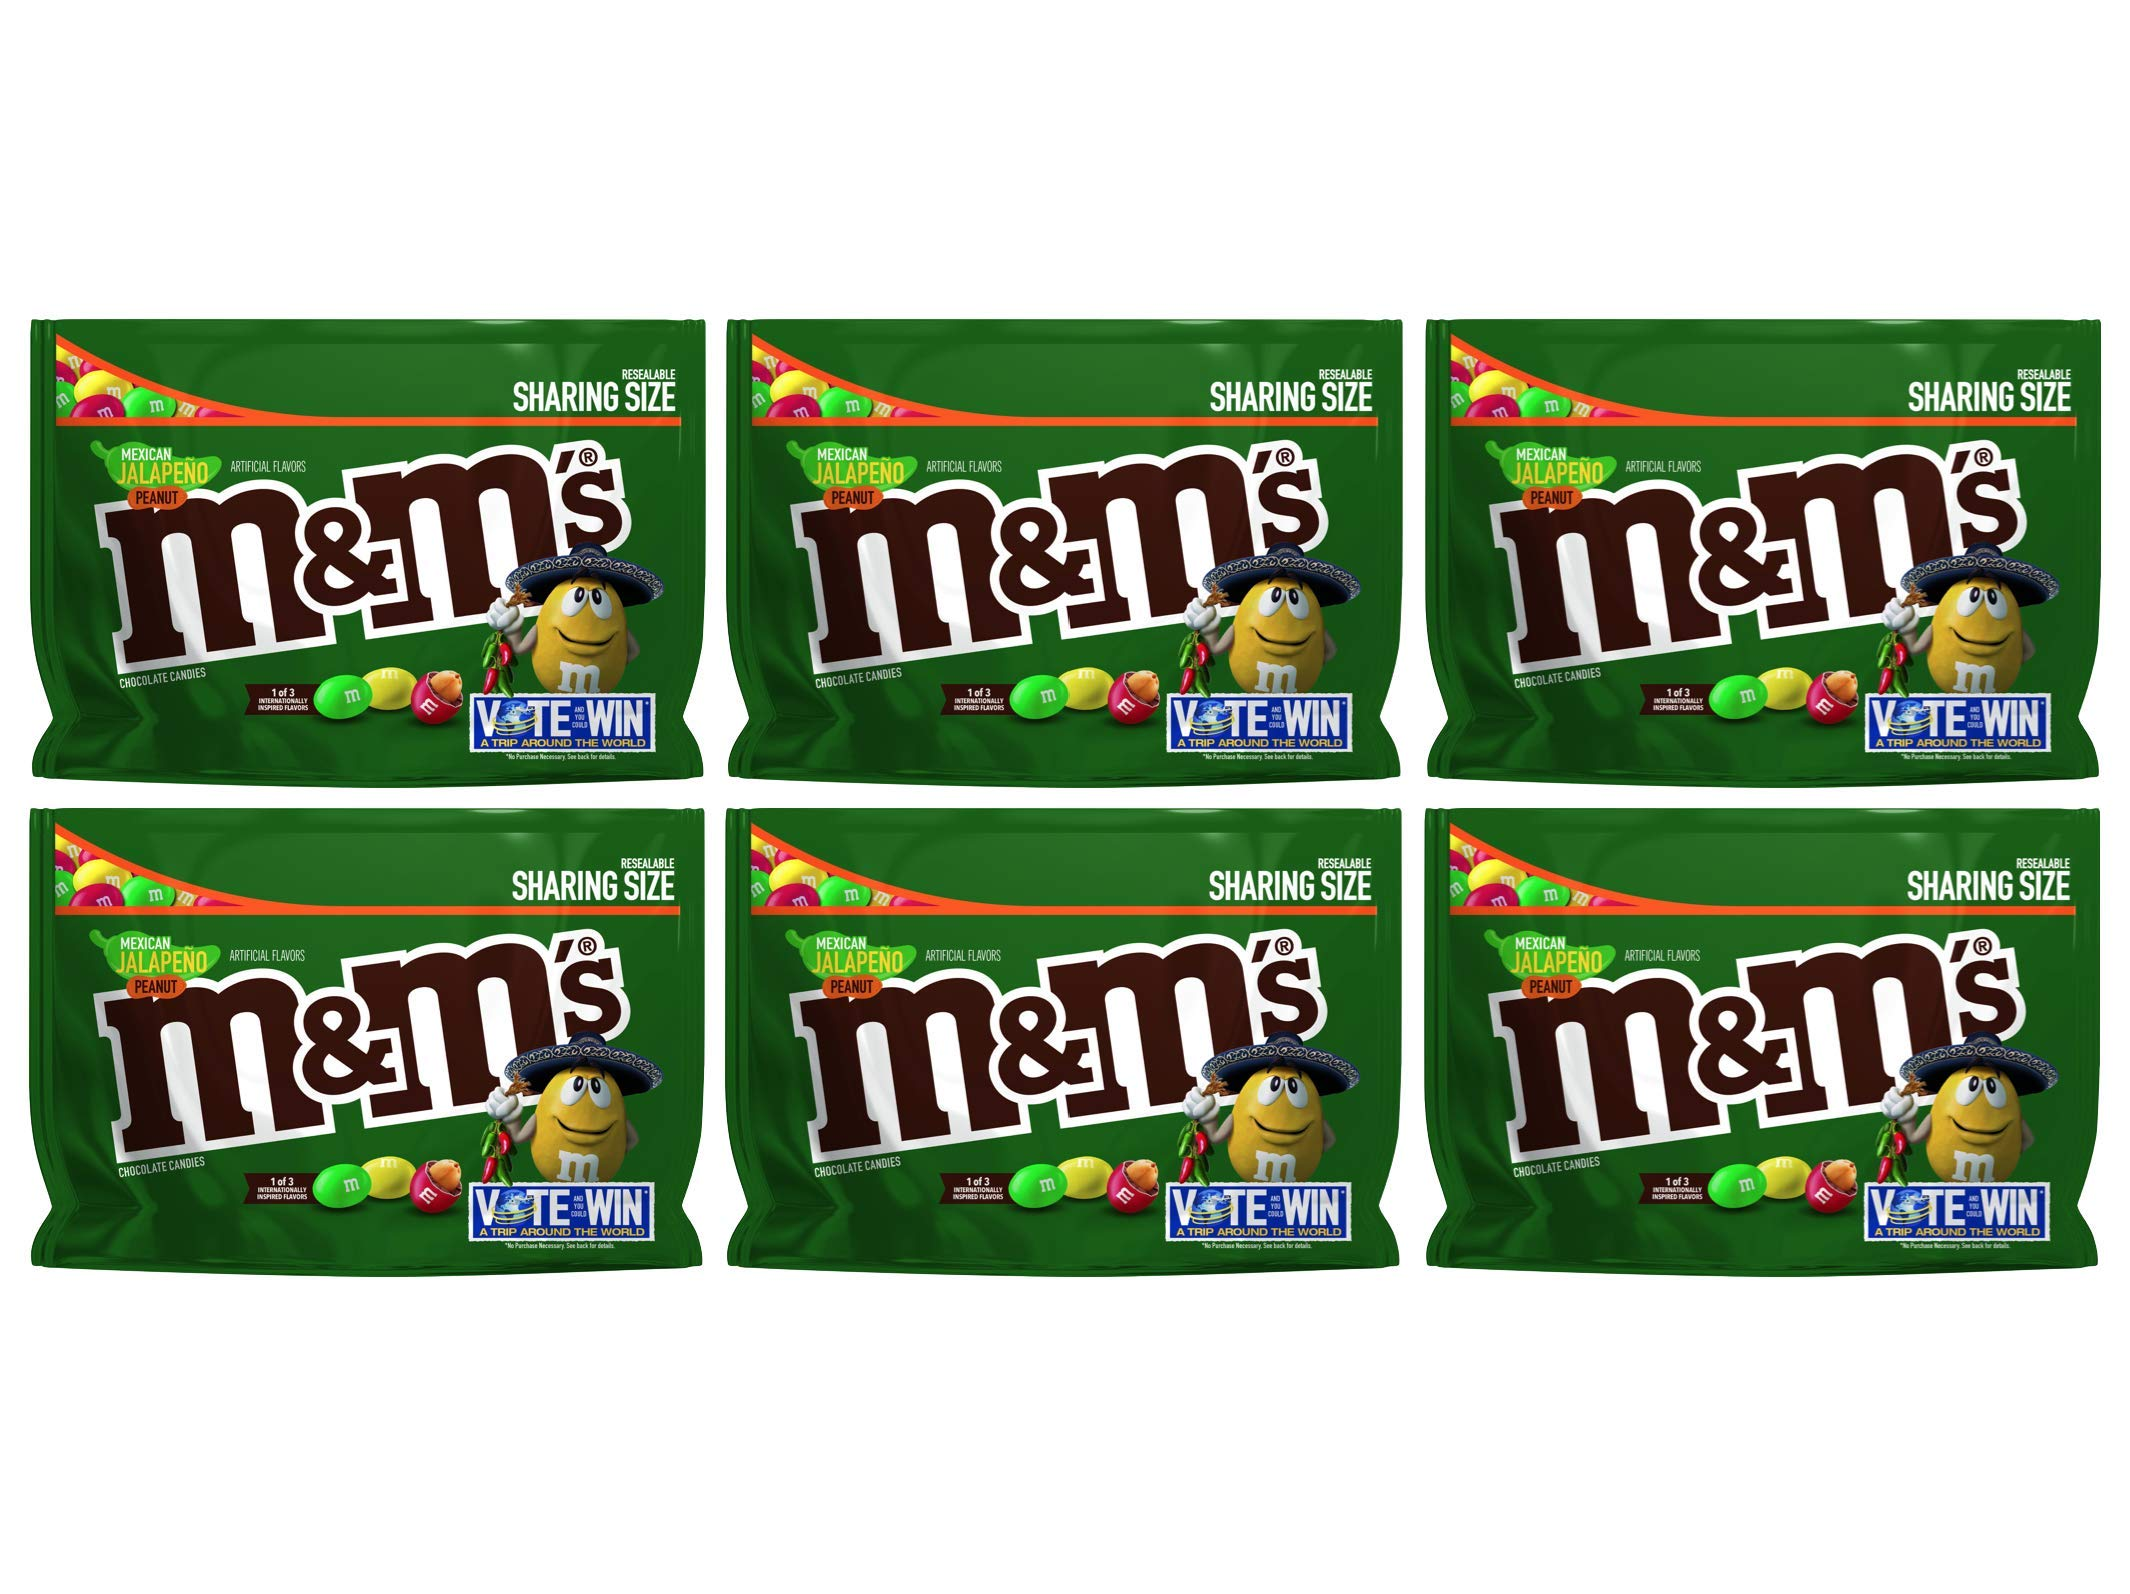 M&M's (Pack of 6) Chocolate Candy Flavor Vote Mexican Jalapeno Peanut Sharing Size, 9.6 Ounce Bag by M&M'S